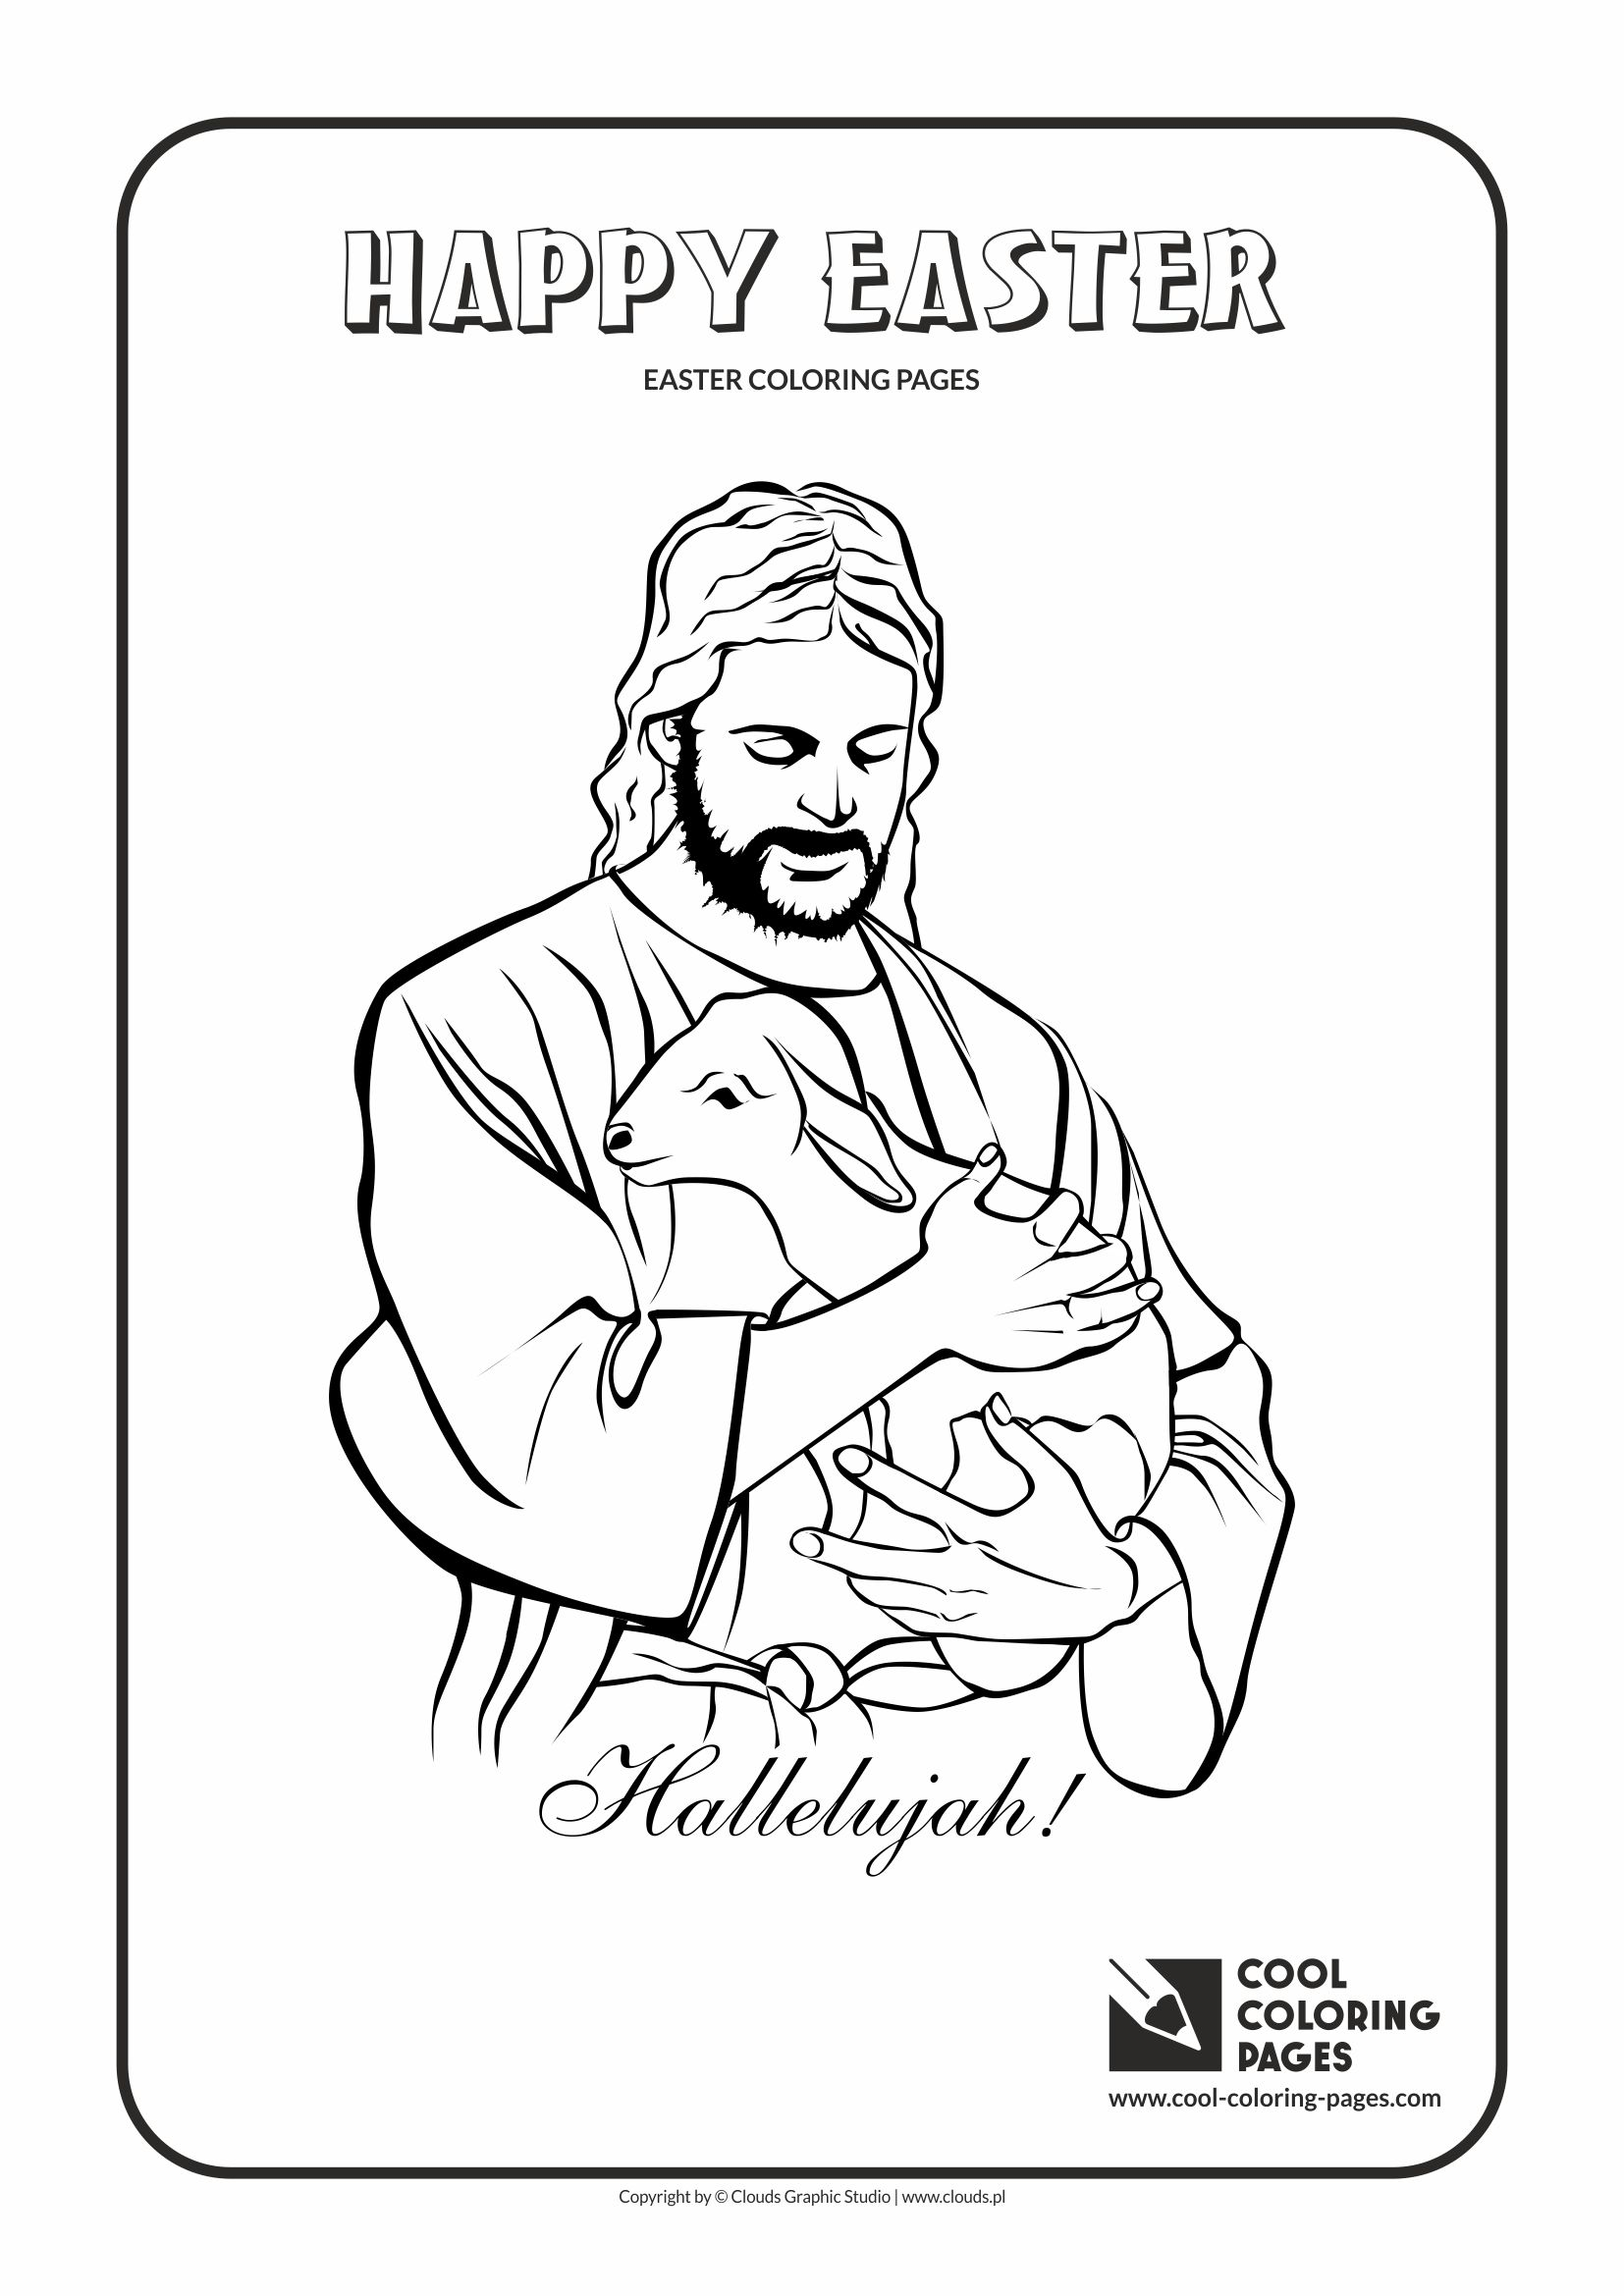 Cool Coloring Pages Easter Coloring Pages Cool Coloring Pages Free Educational Coloring Pages And Activities For Kids